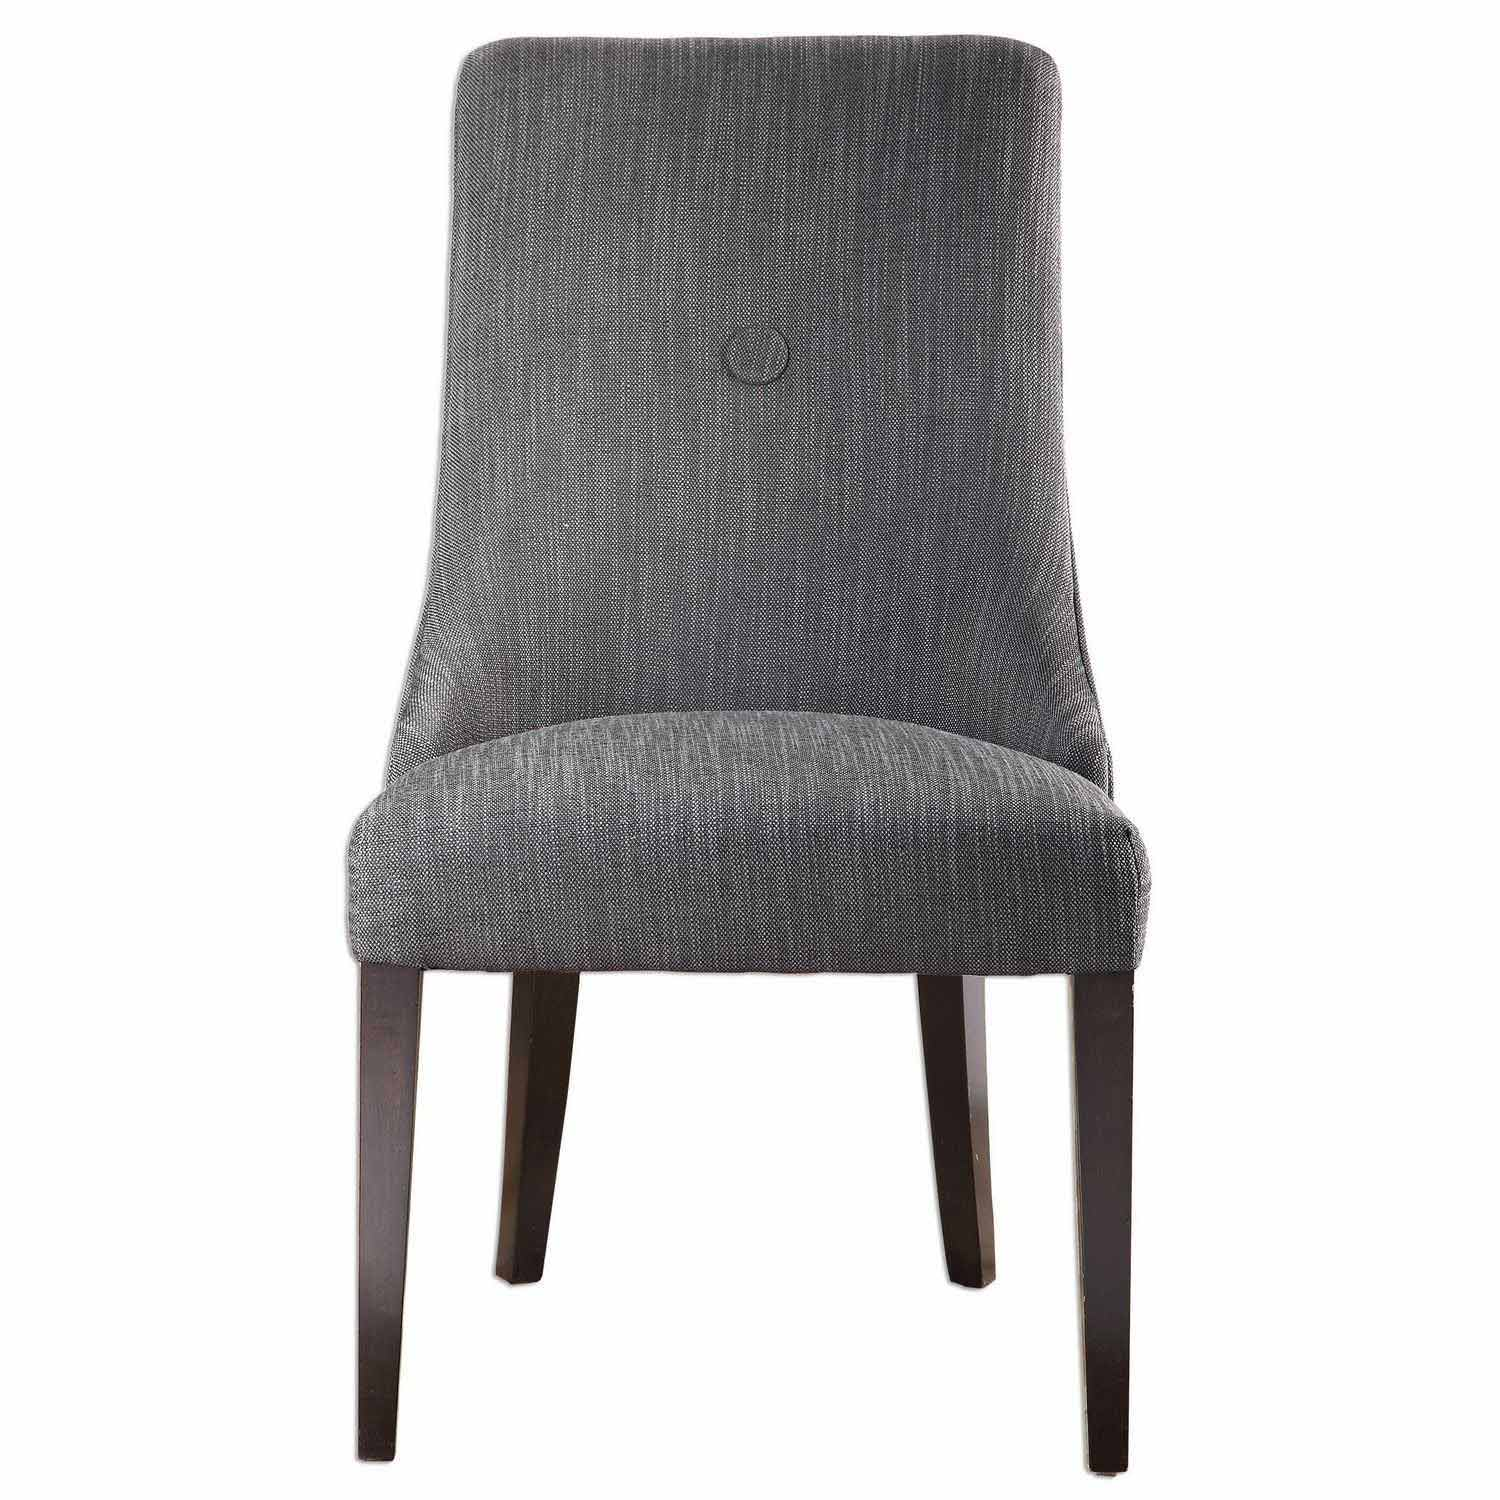 Uttermost Patamon Armless Chairs - Set of 2